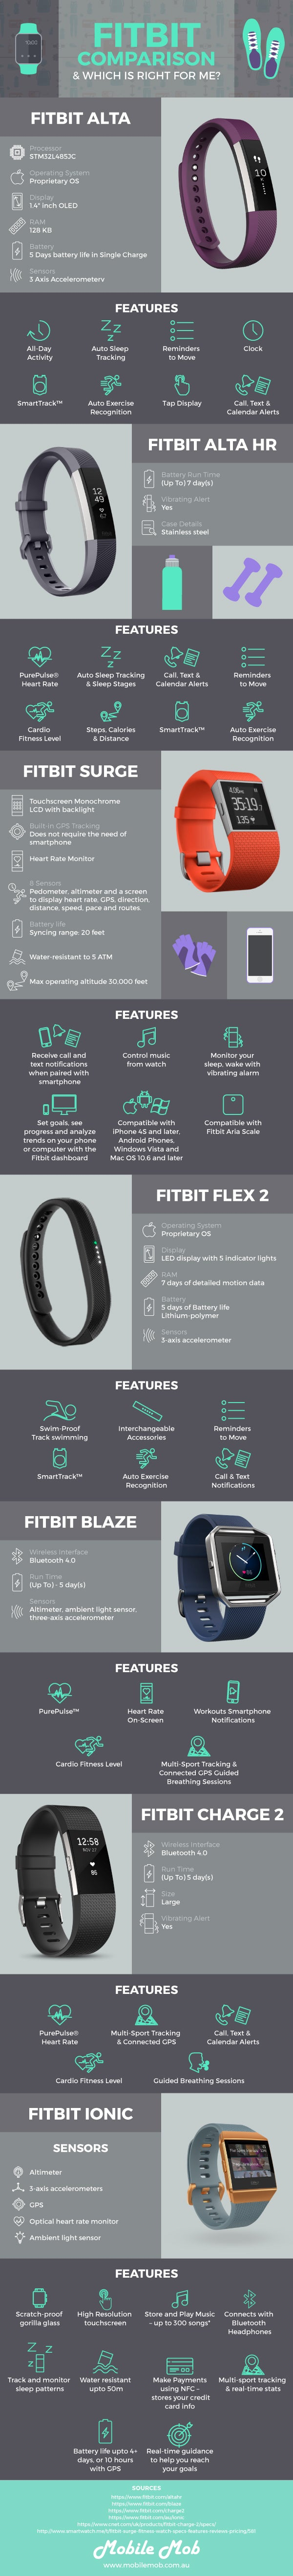 Fitbit Comparison Guide